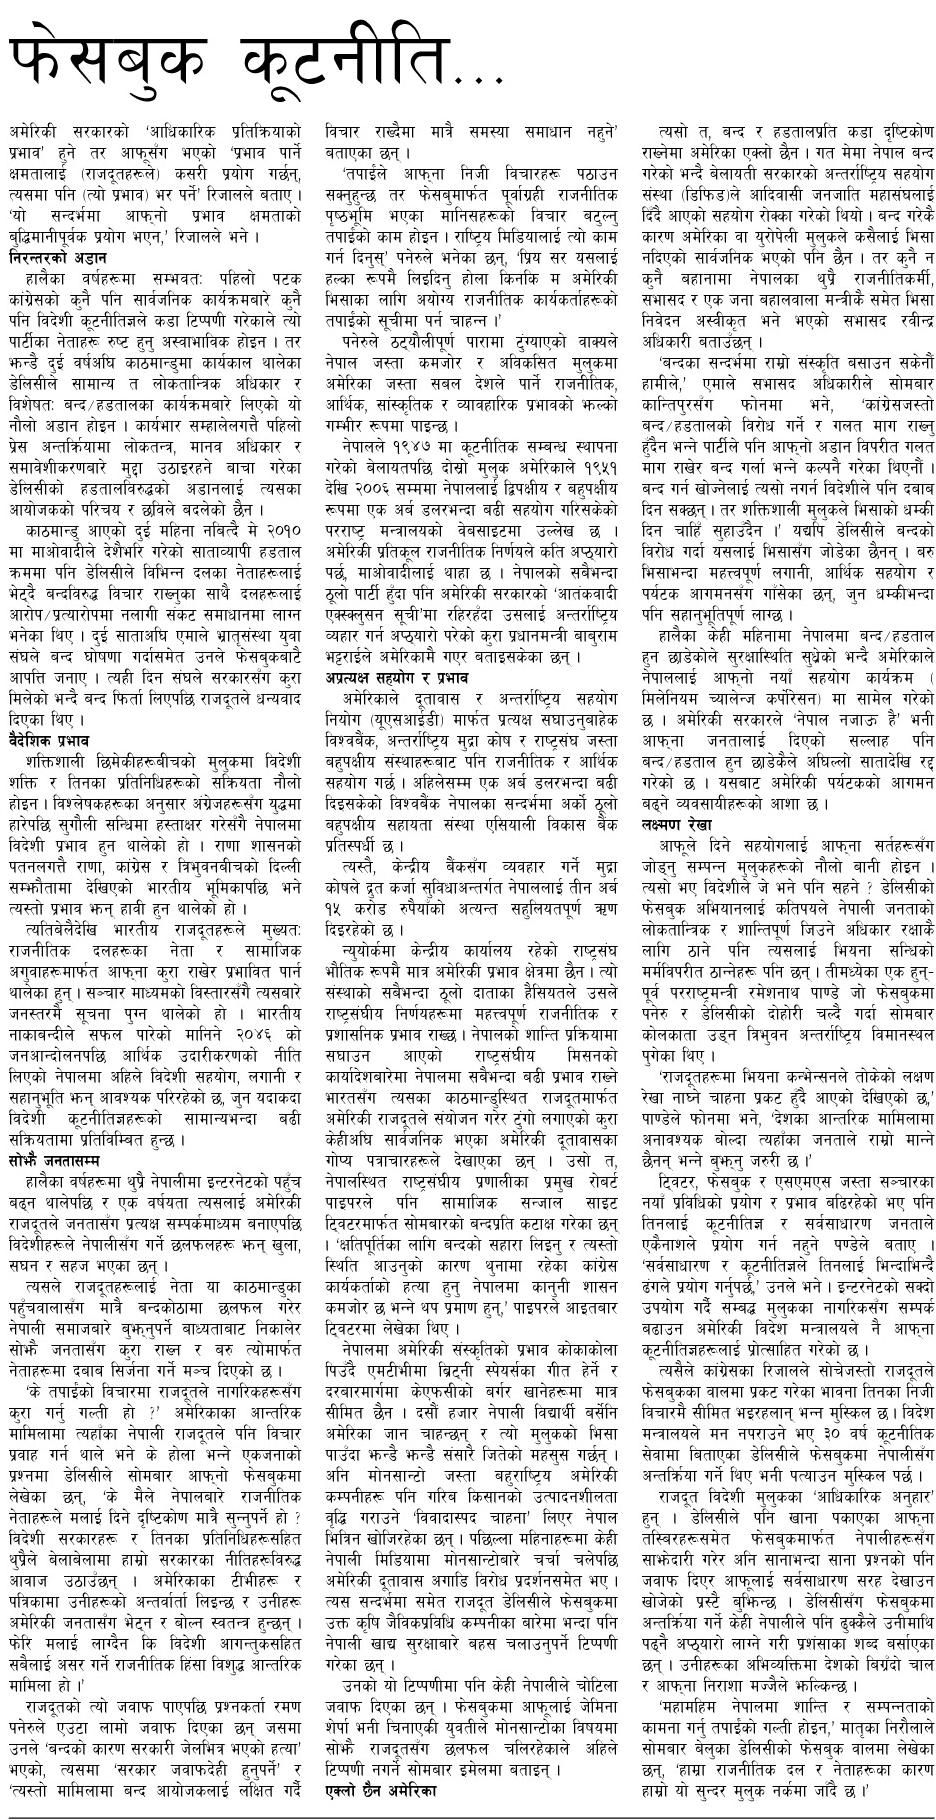 facebook diplomacy carryover kantipur page 13